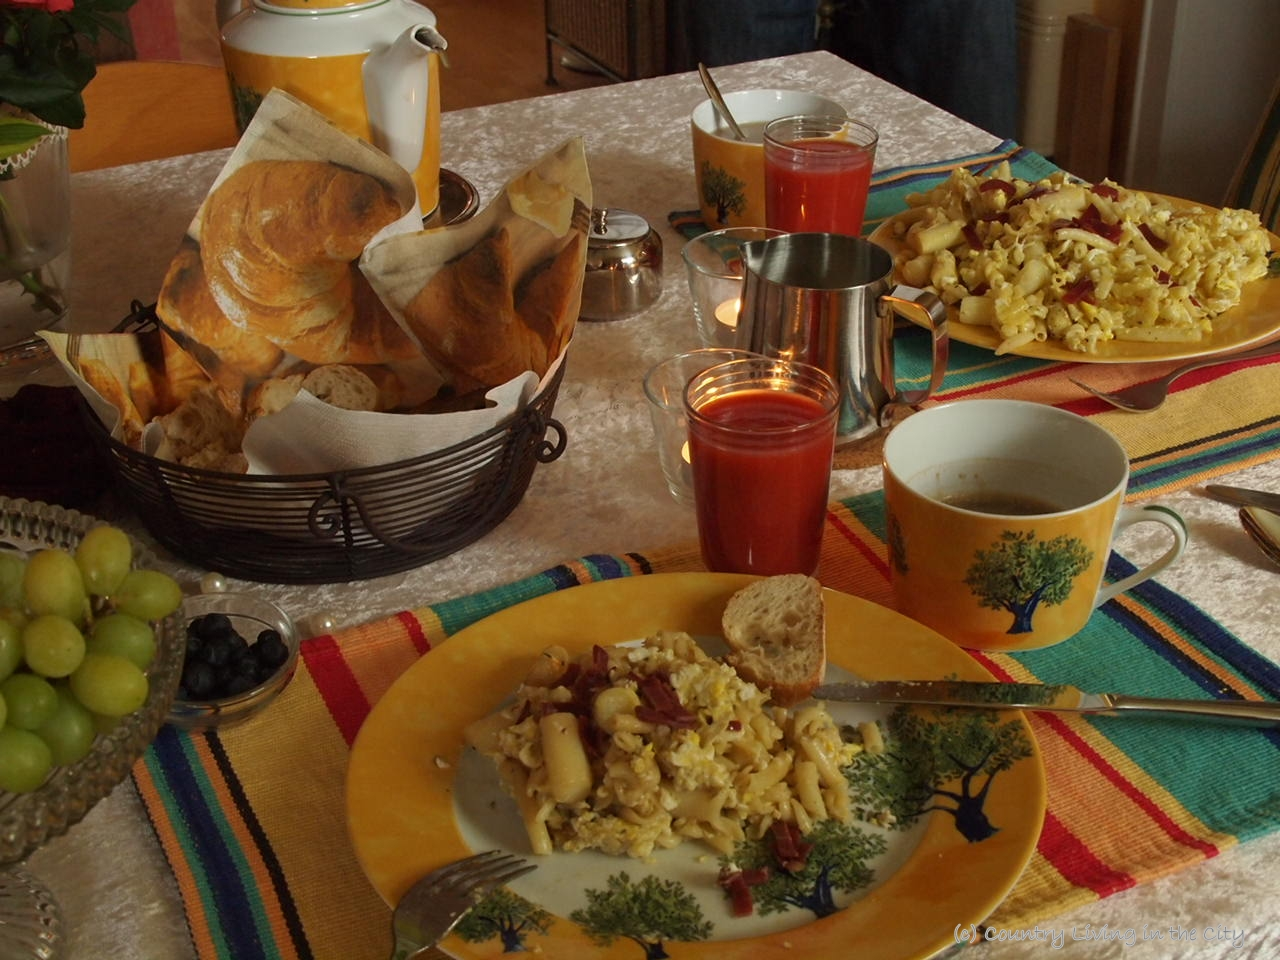 Knoblauch Einpflanzen Hessenpark Sunday Morning Eggs And More Country Living